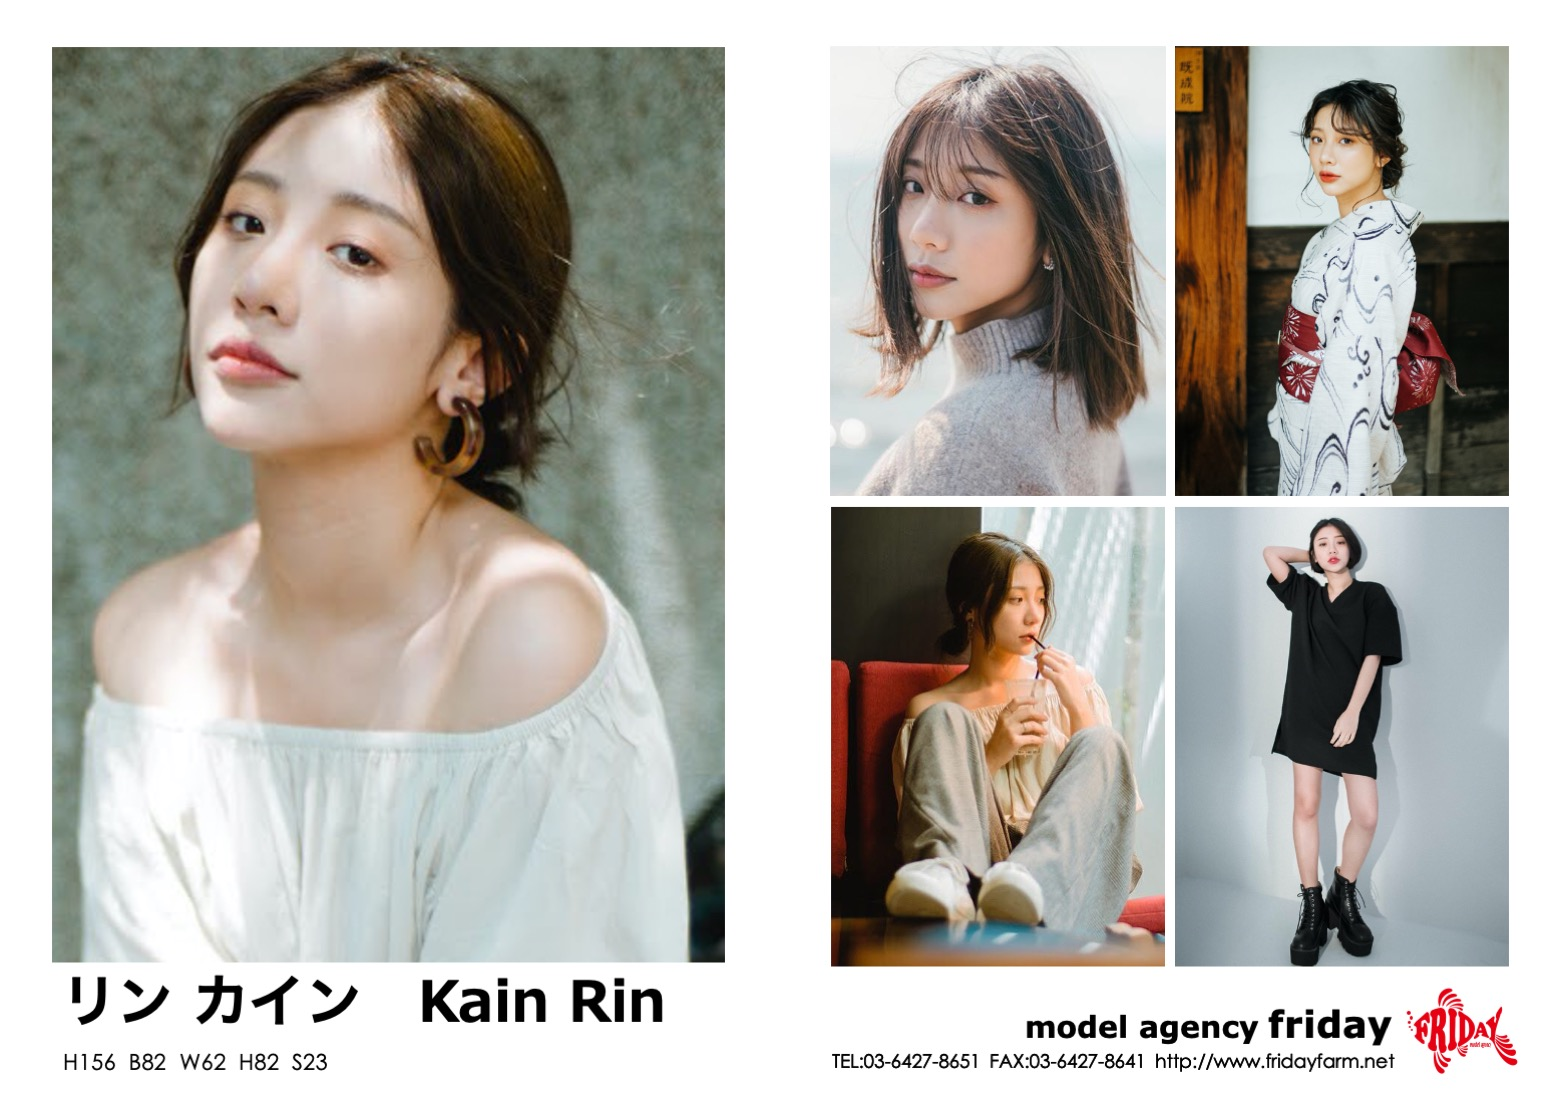 リン カイン - Kain Rin | model agency friday